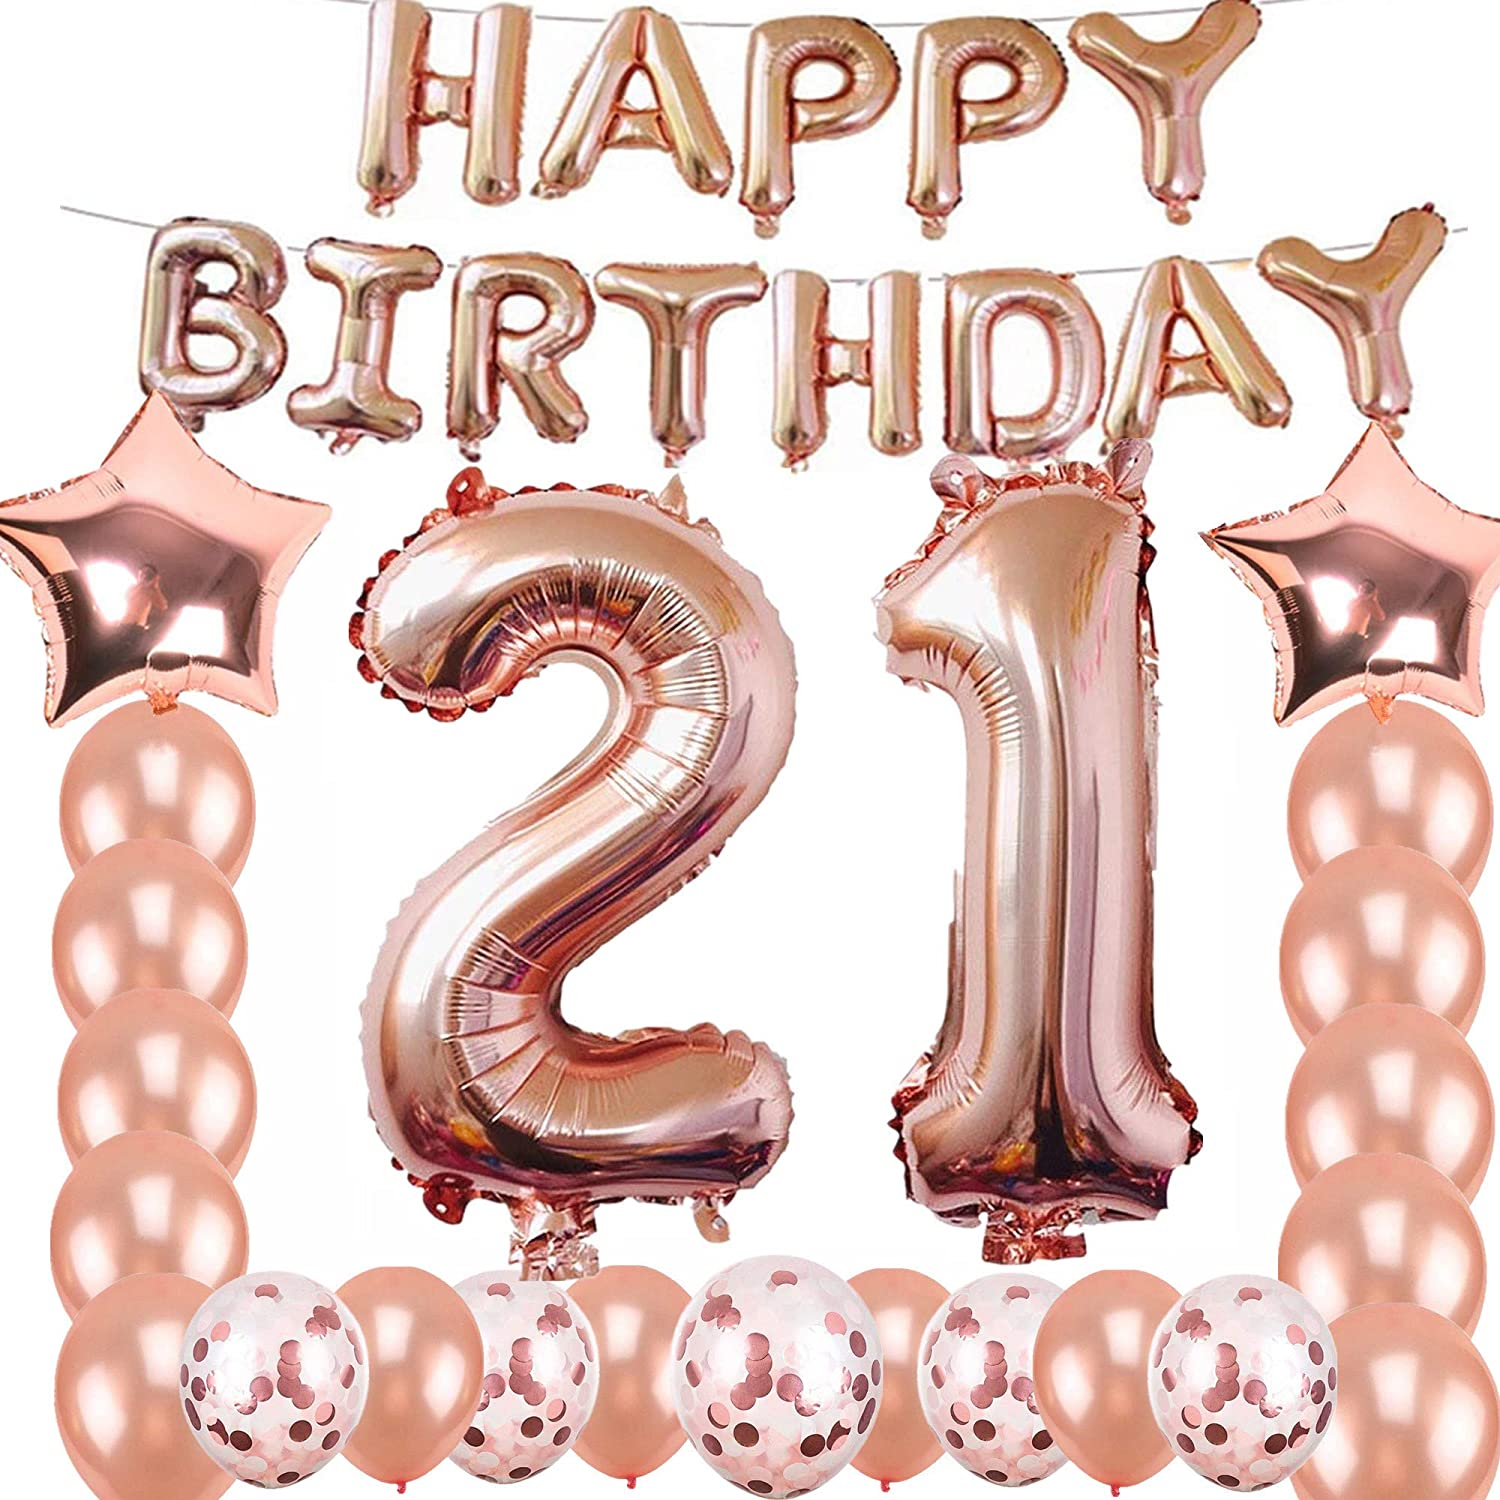 21st Birthday Decorations Party Supplies, Jumbo Rose Gold Foil Balloons for Birthday Party Supplies,Anniversary Events Decorations and Graduation Decorations Sweet 21 Party,21st Anniversary